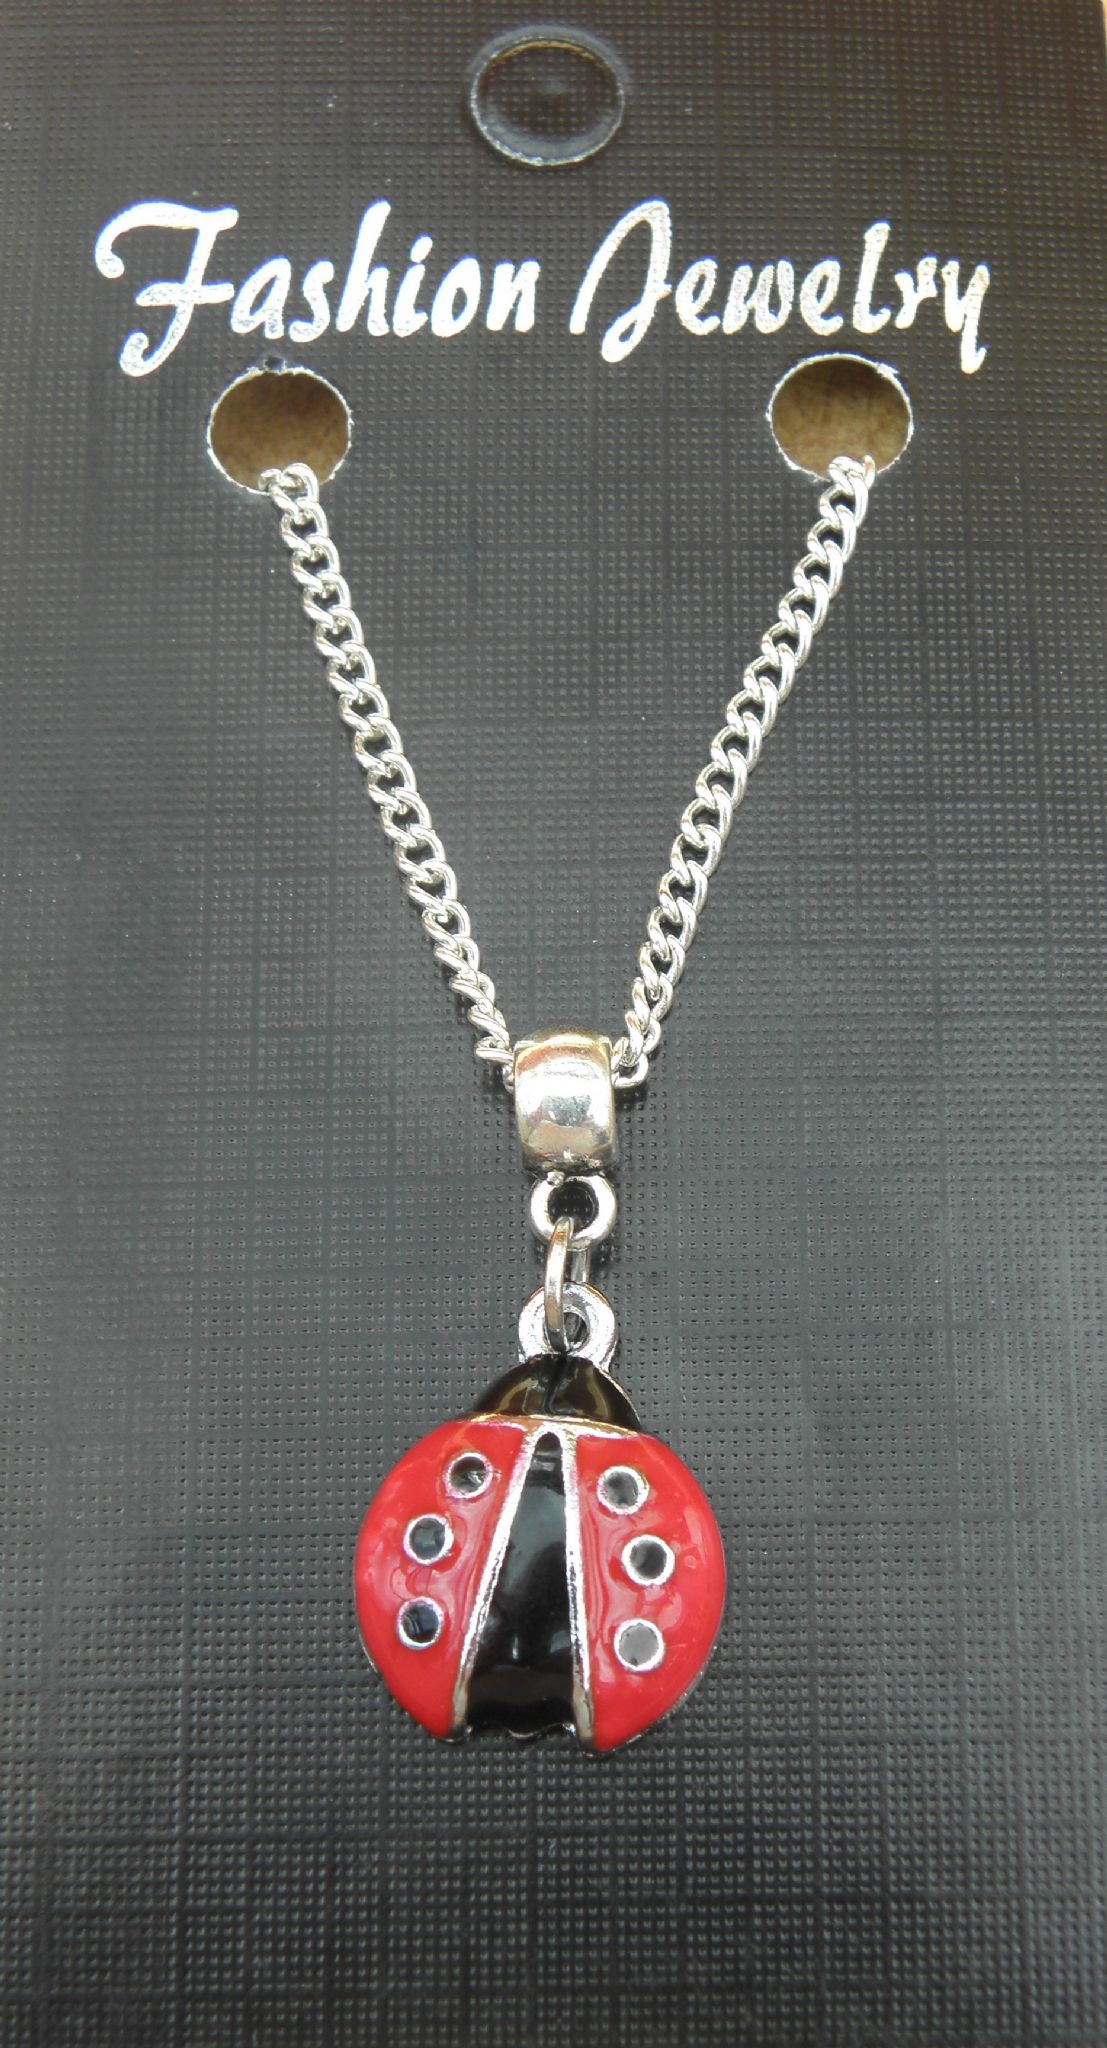 "18"" or 24 Inch Chain Necklace & Ladybird Pendant / Charm - Brand New"